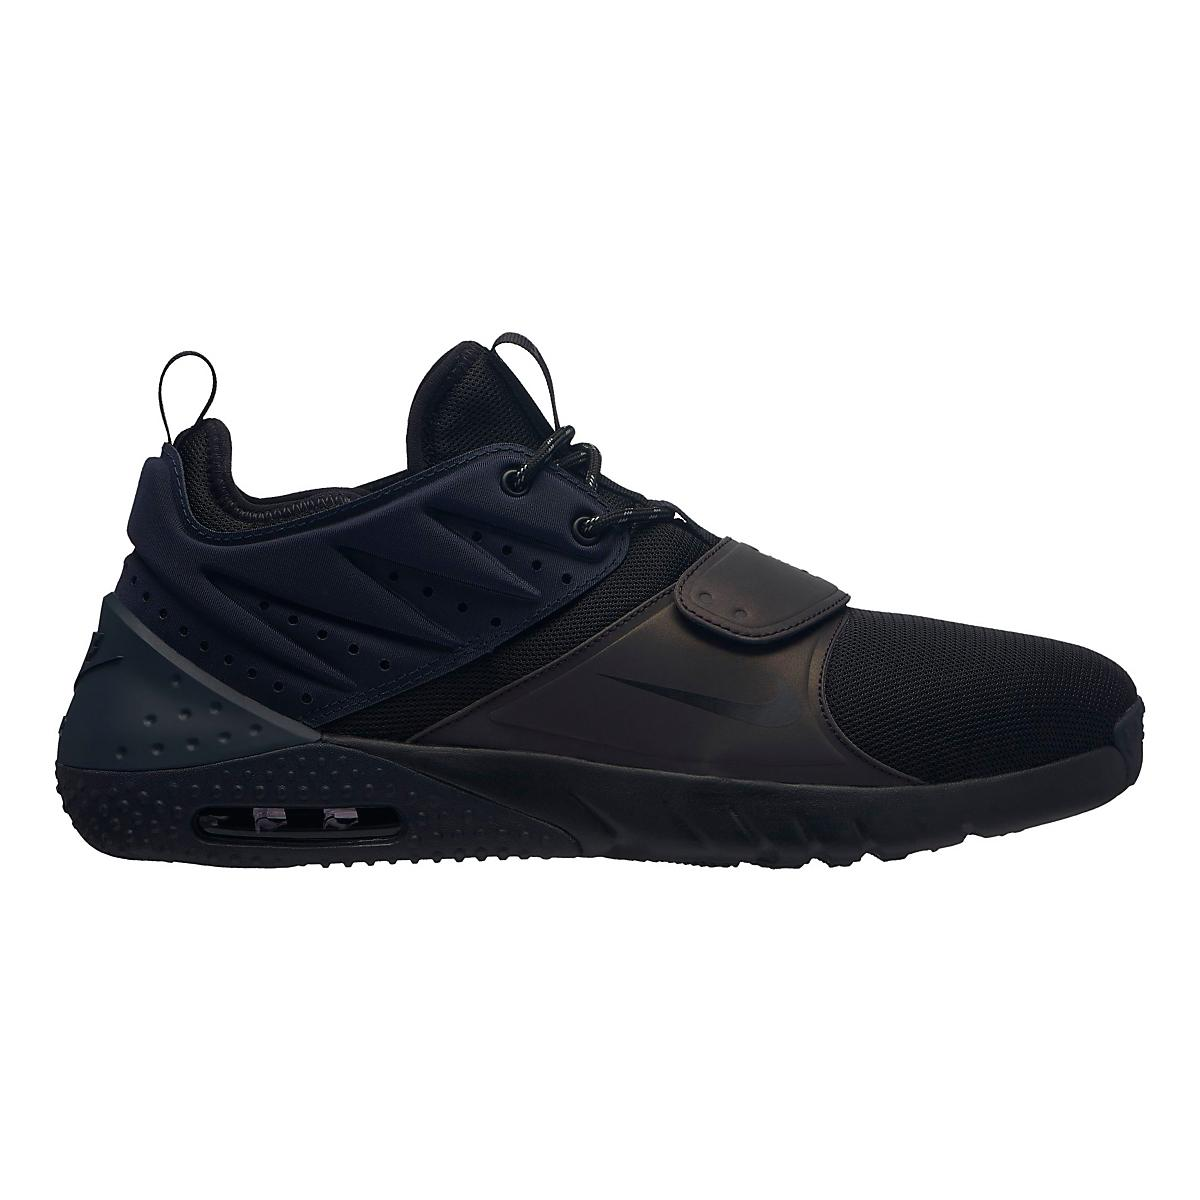 san francisco d1575 8a14b Mens Nike Air Max Trainer 1 AMP Cross Training Shoe at Road Runner Sports